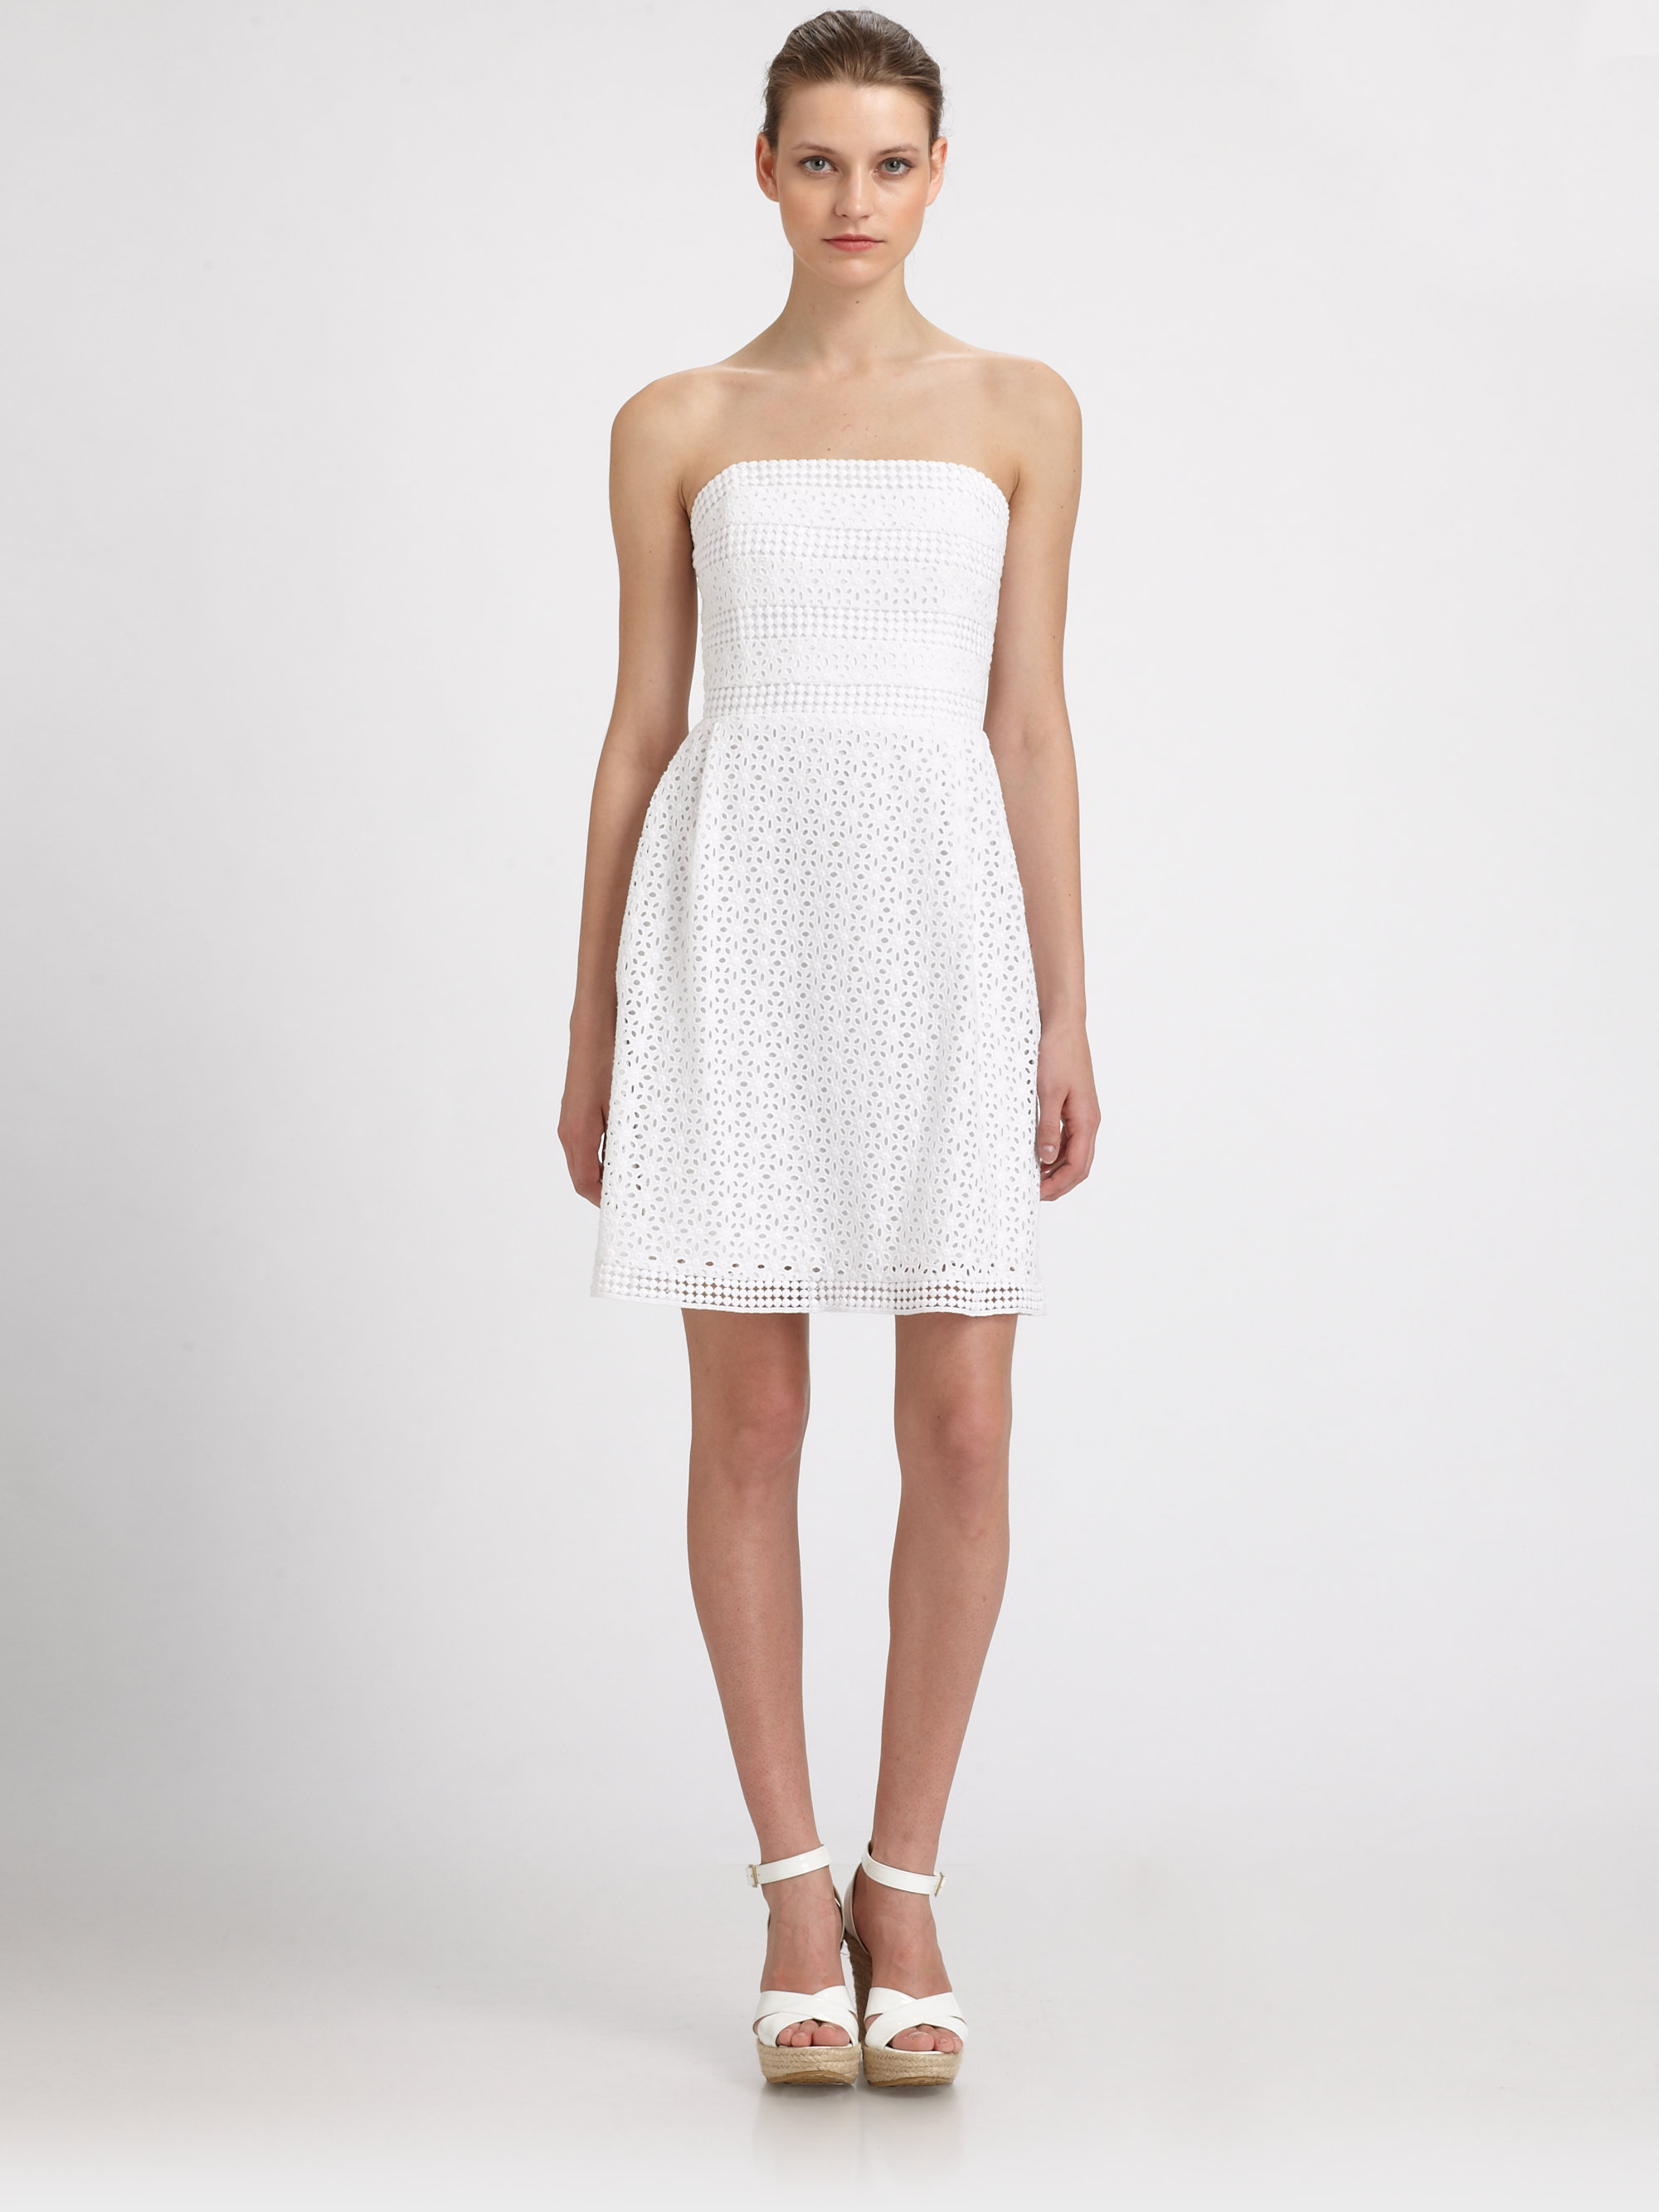 Laundry by shelli segal Strapless Cotton Eyelet Dress in White | Lyst